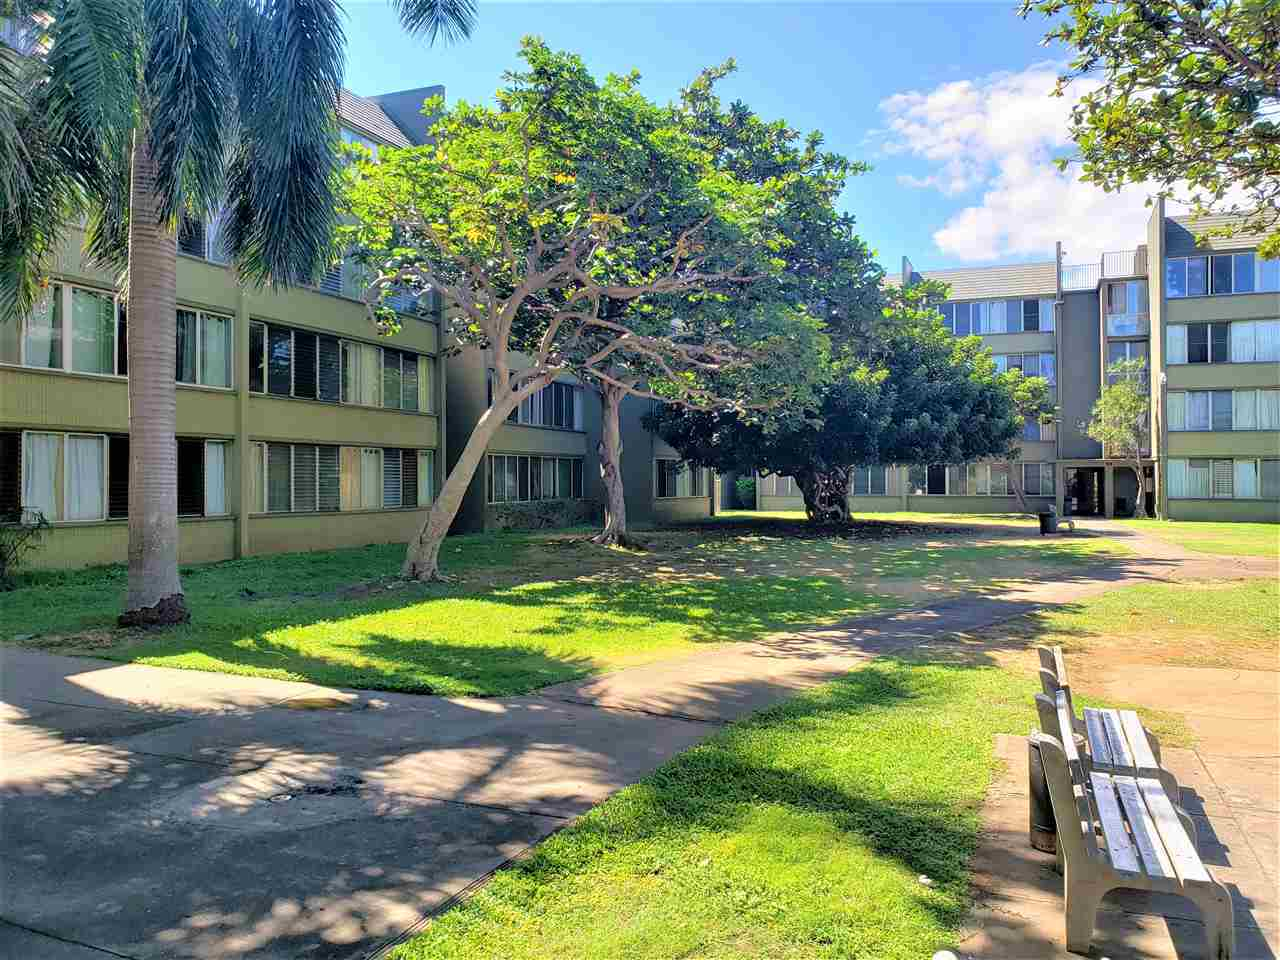 $160,000 - 2Br/2Ba -  for Sale in Harbor Lights, Kahului